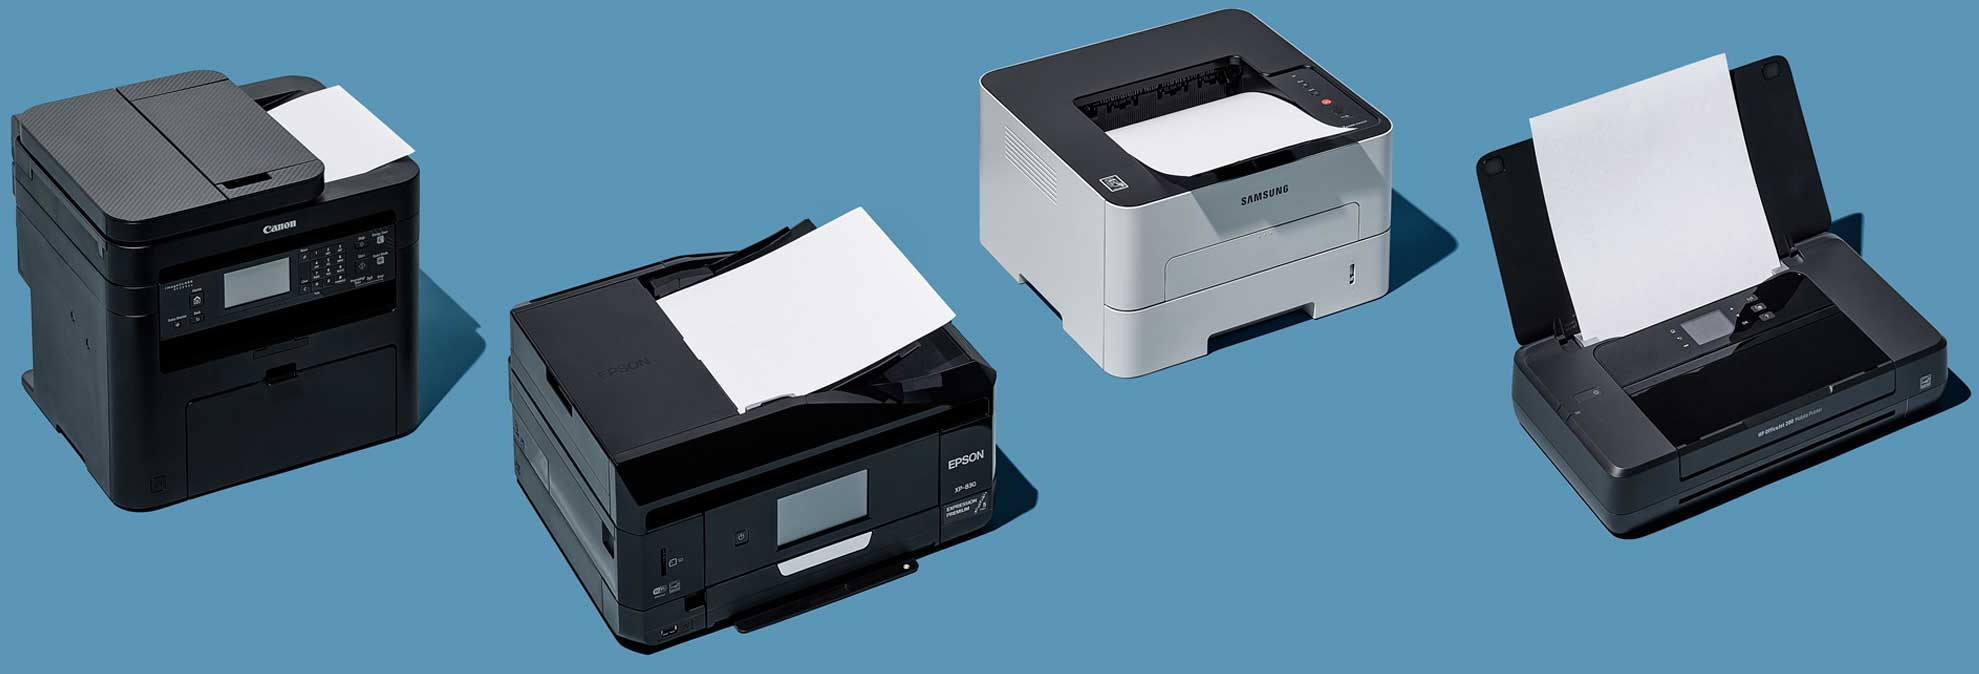 how to pick the perfect printer consumer reports